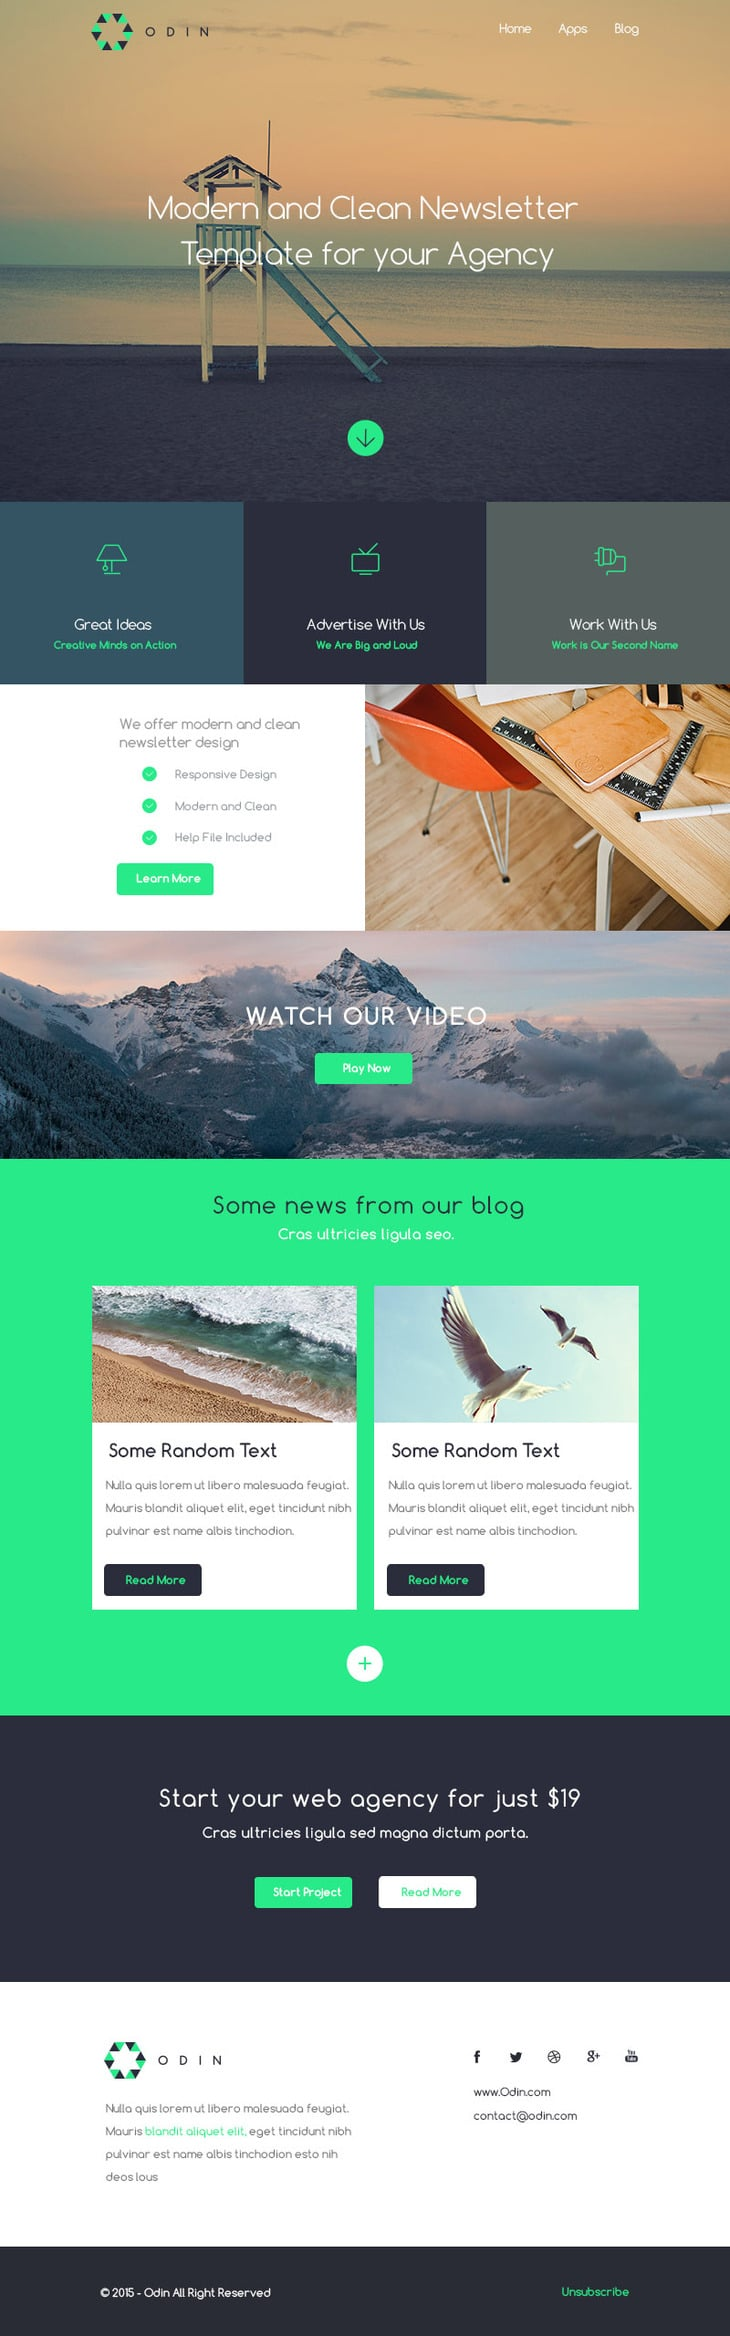 Odin - Free Newsletter Template PSD